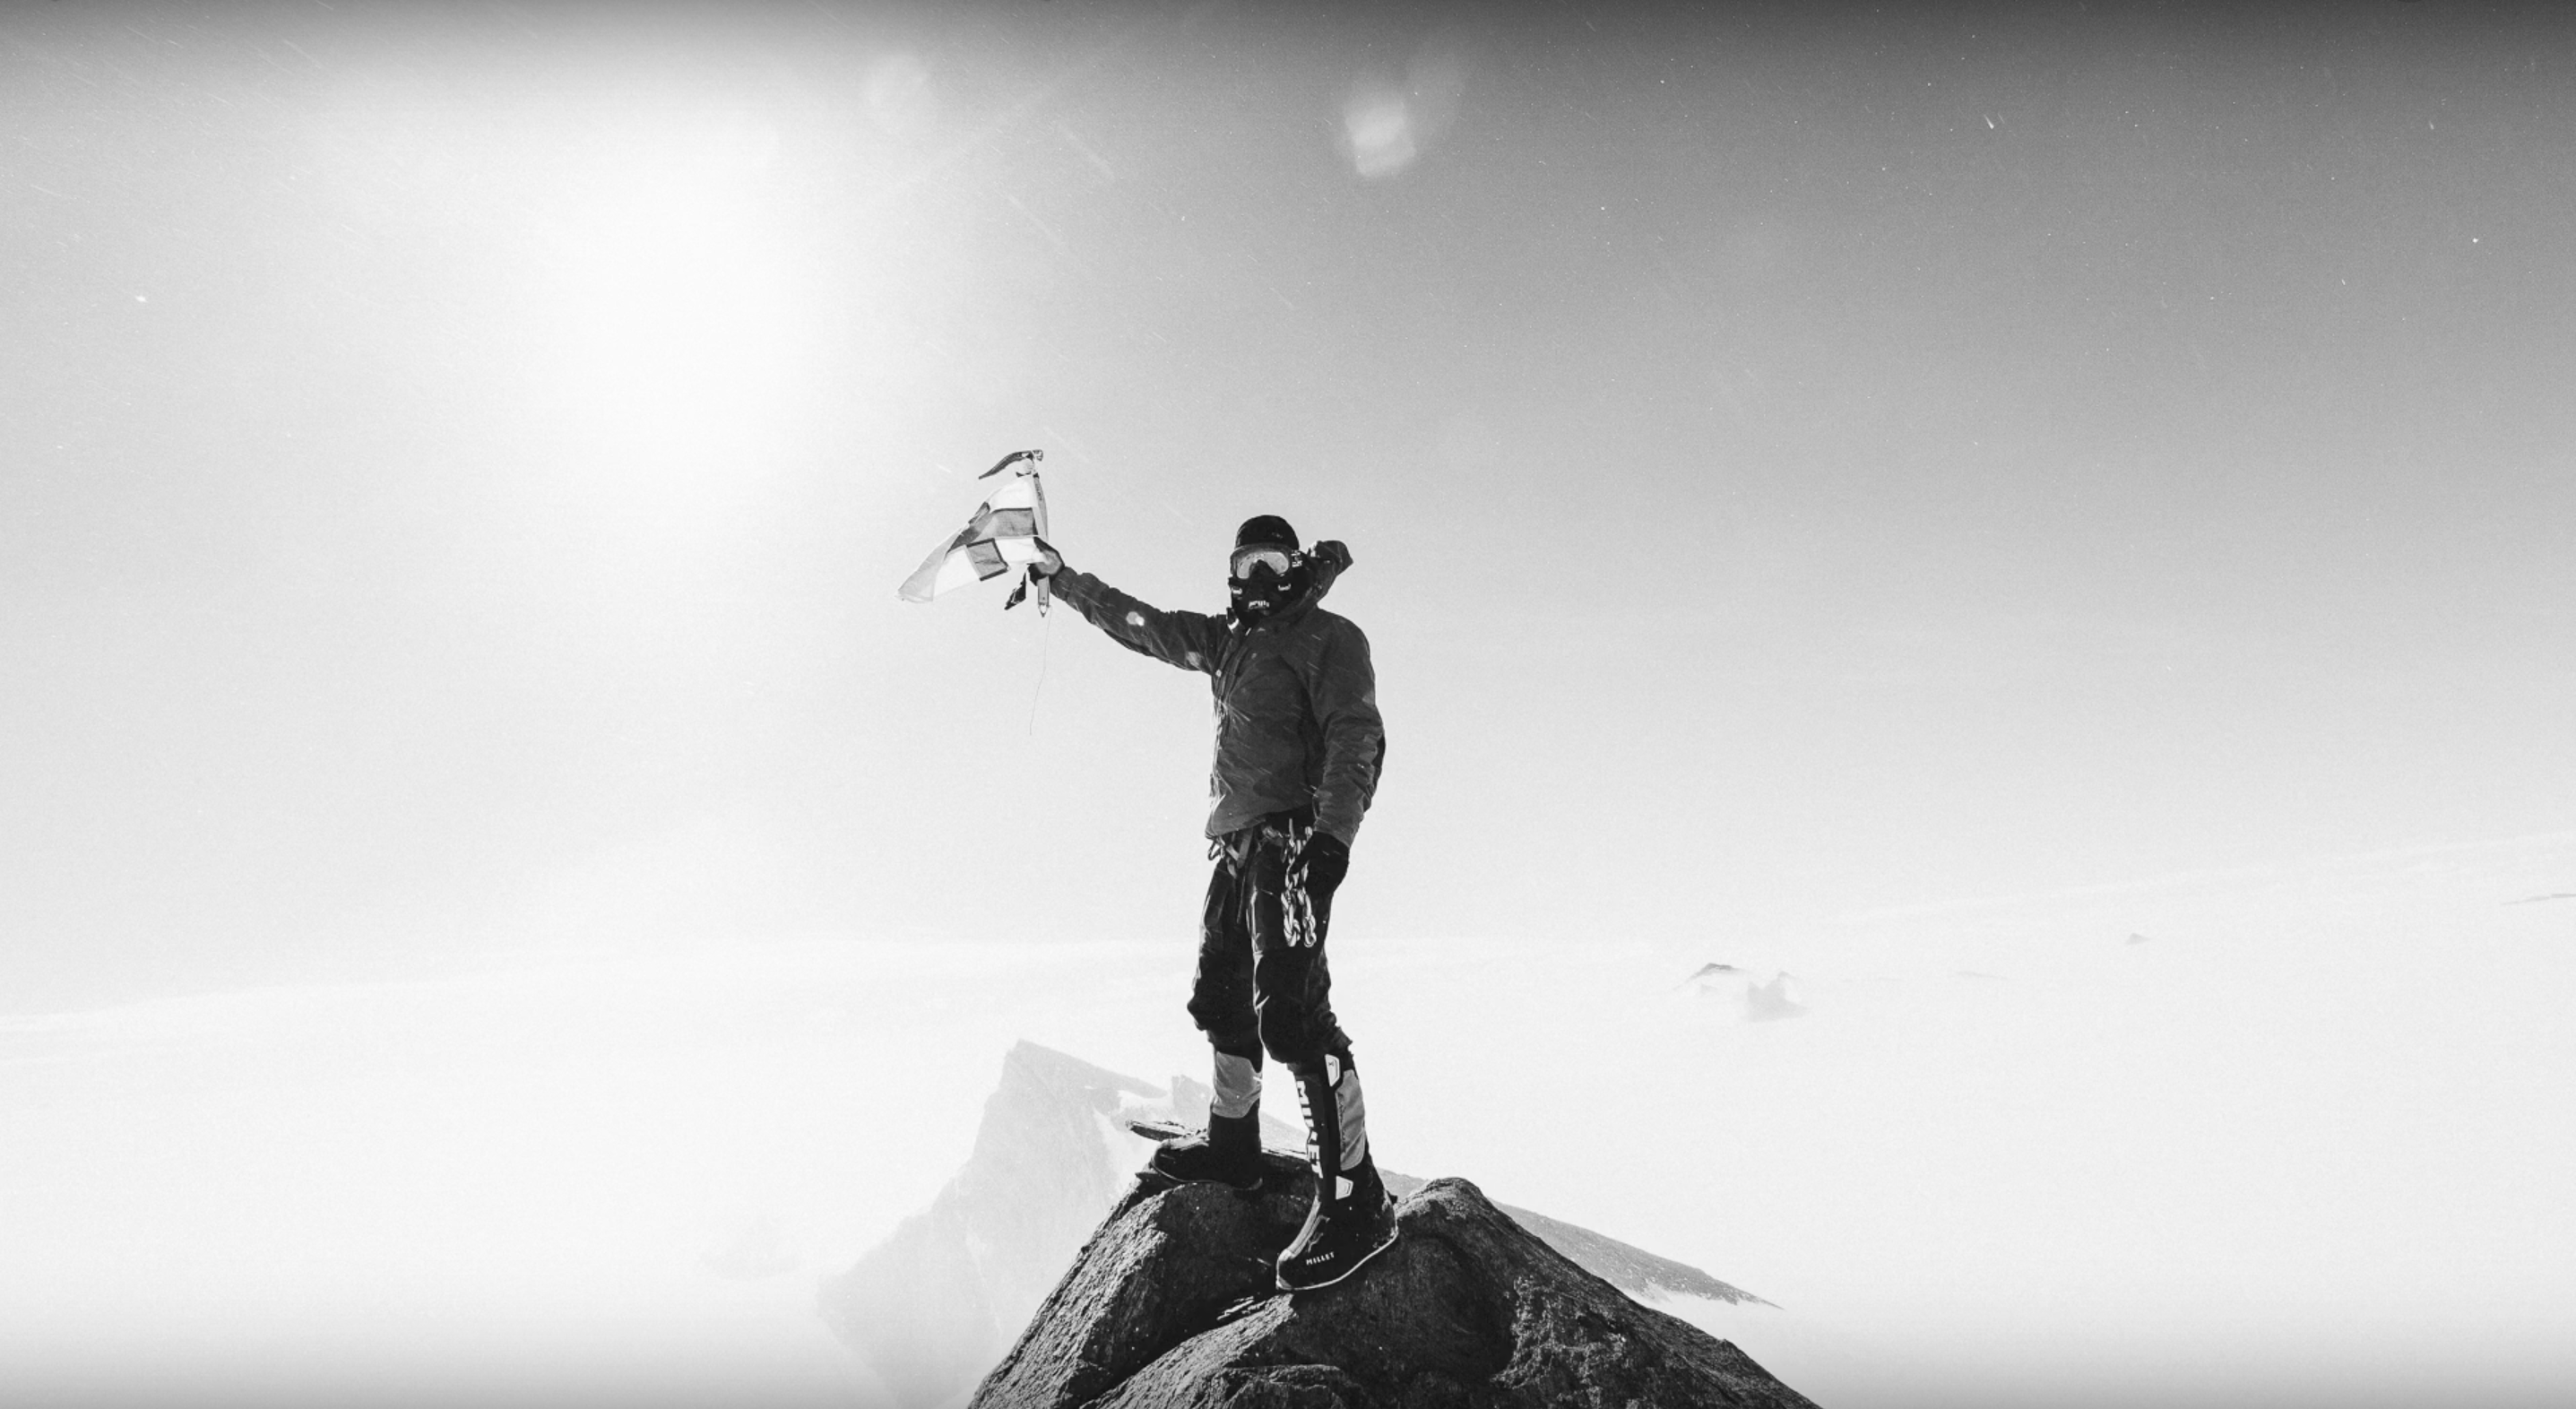 Pata_Lynx_expedition_18